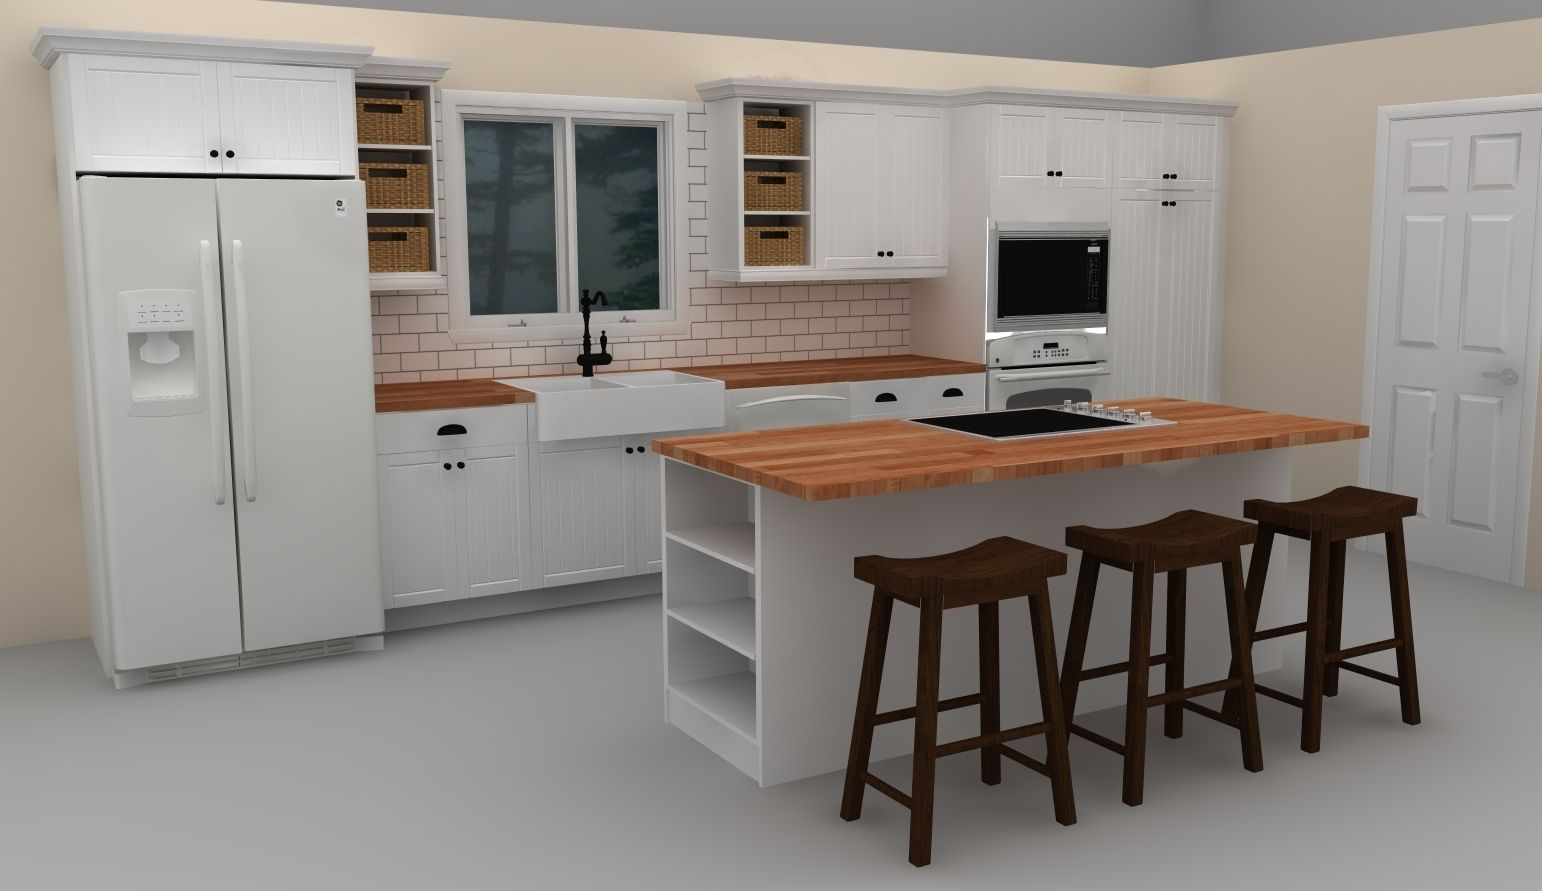 This White Ikea Kitchen Island Includes A Cooktop To Provide With Brown  Chairs And Wooden Top Kitchen Island For Amazing And Cool Ikea Kitchen Islau2026